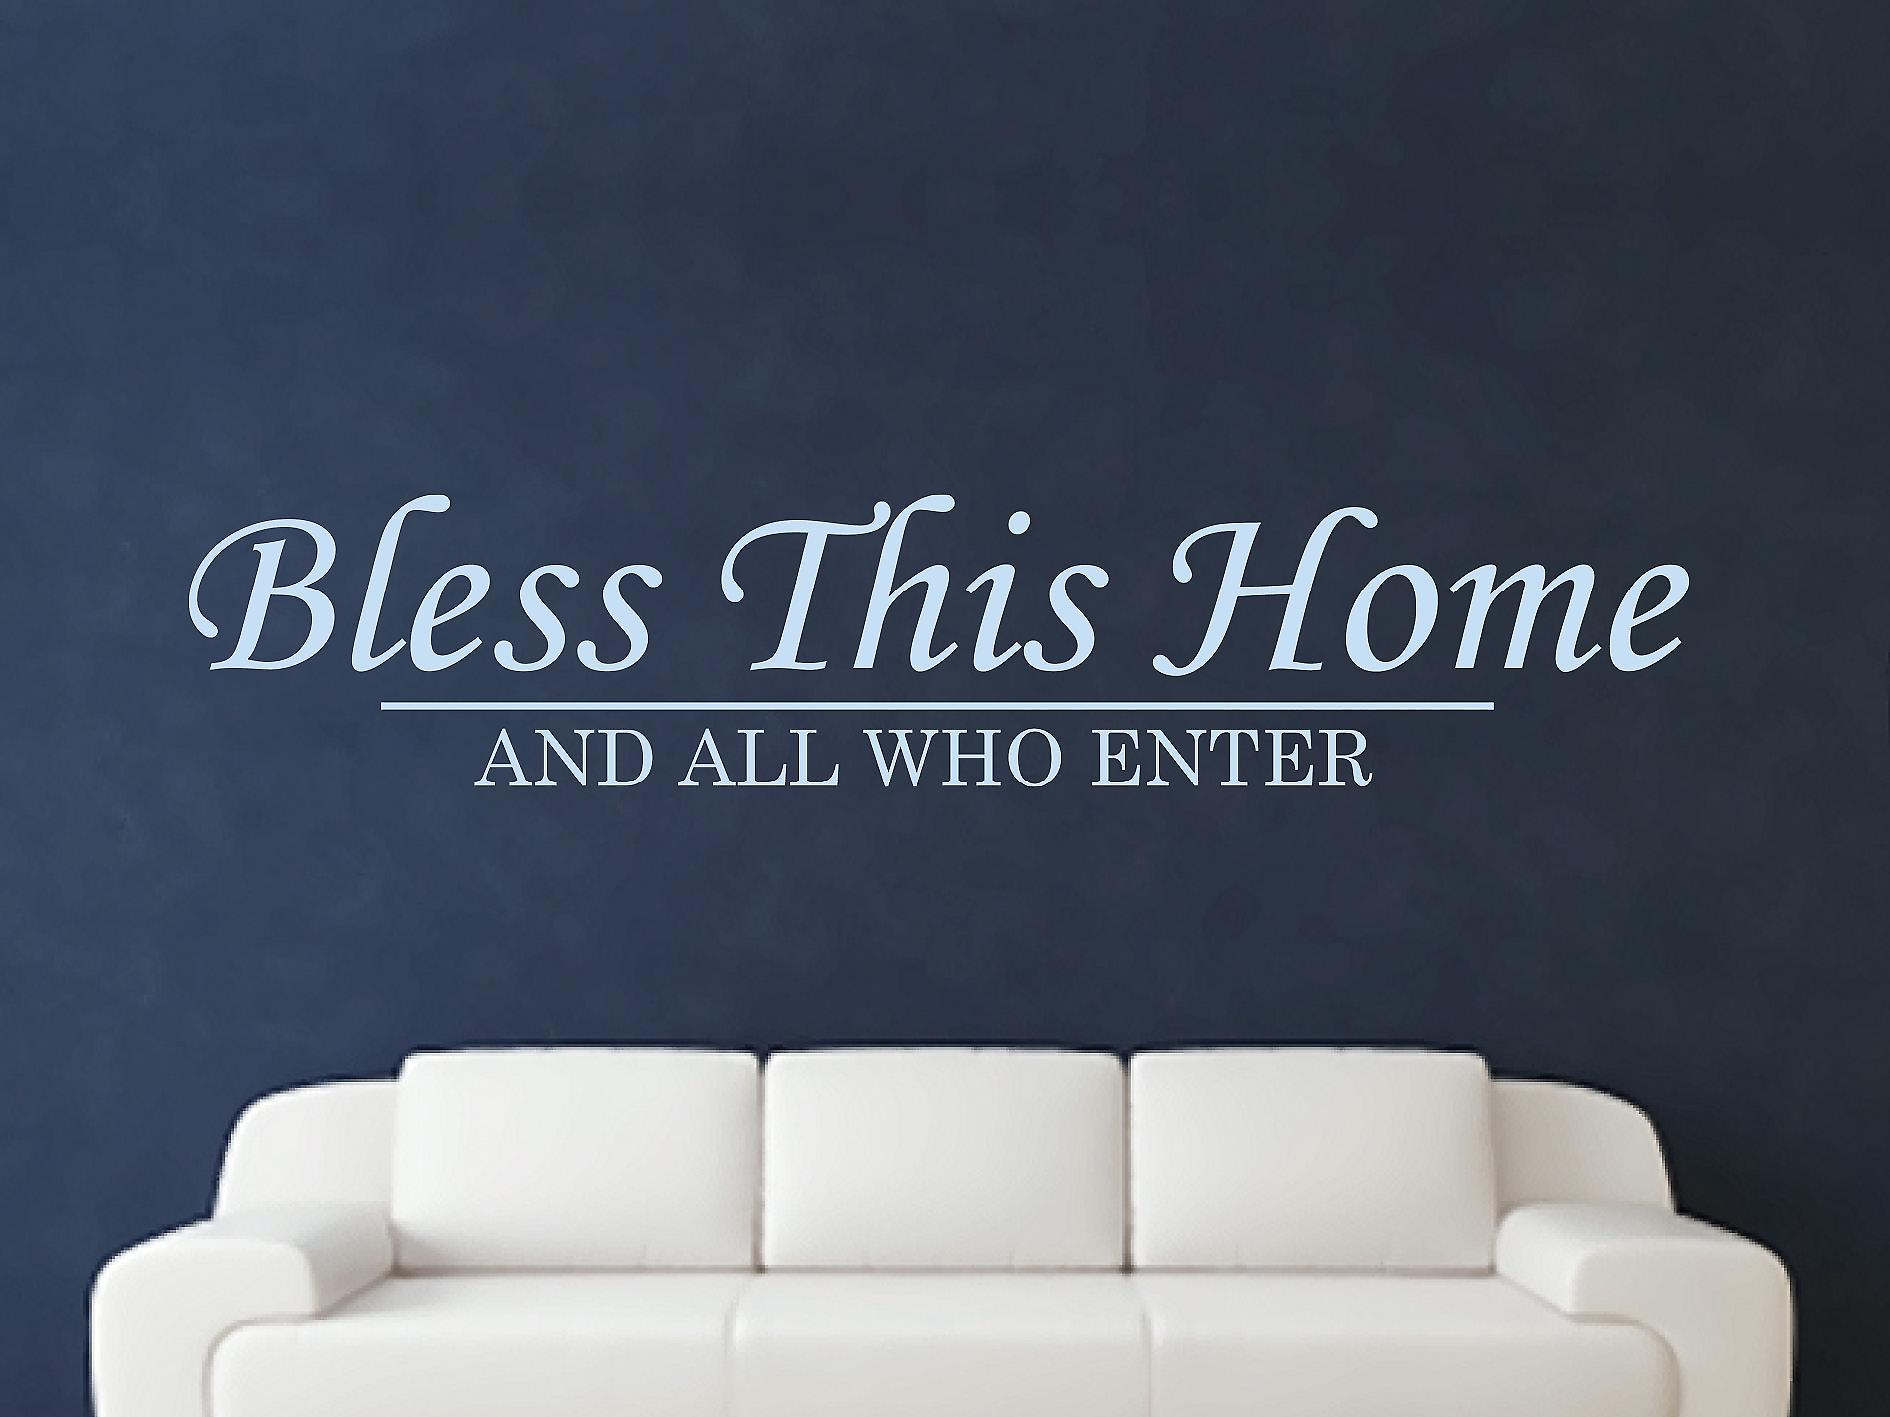 Bless This Home Wall Art Sticker - Pastel Blue